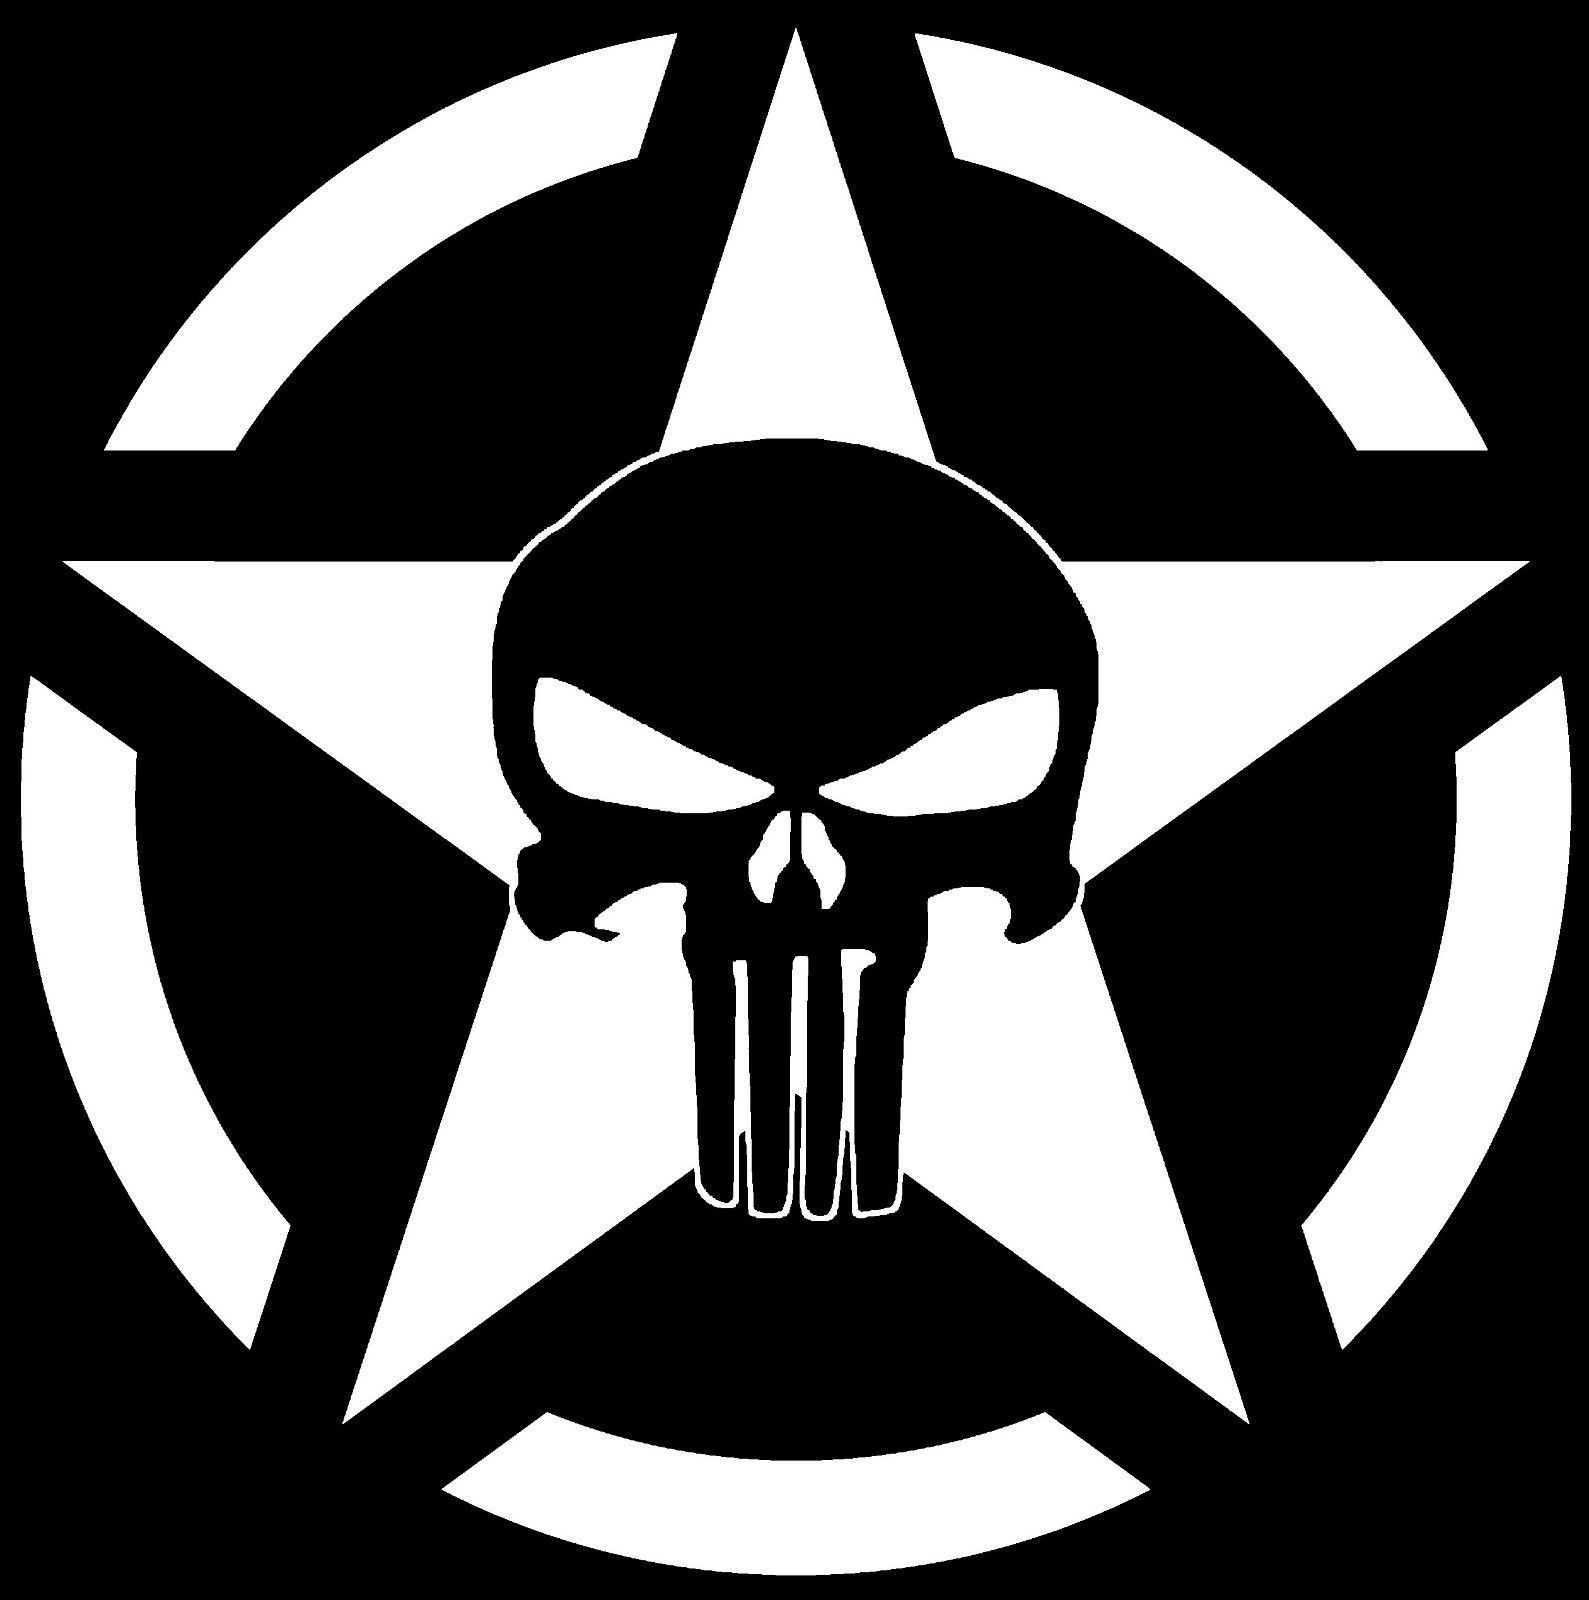 Military Star Jeep Punisher Skull Decal Vinyl Sticker Wrangler Rubicon XJ  Army | eBay